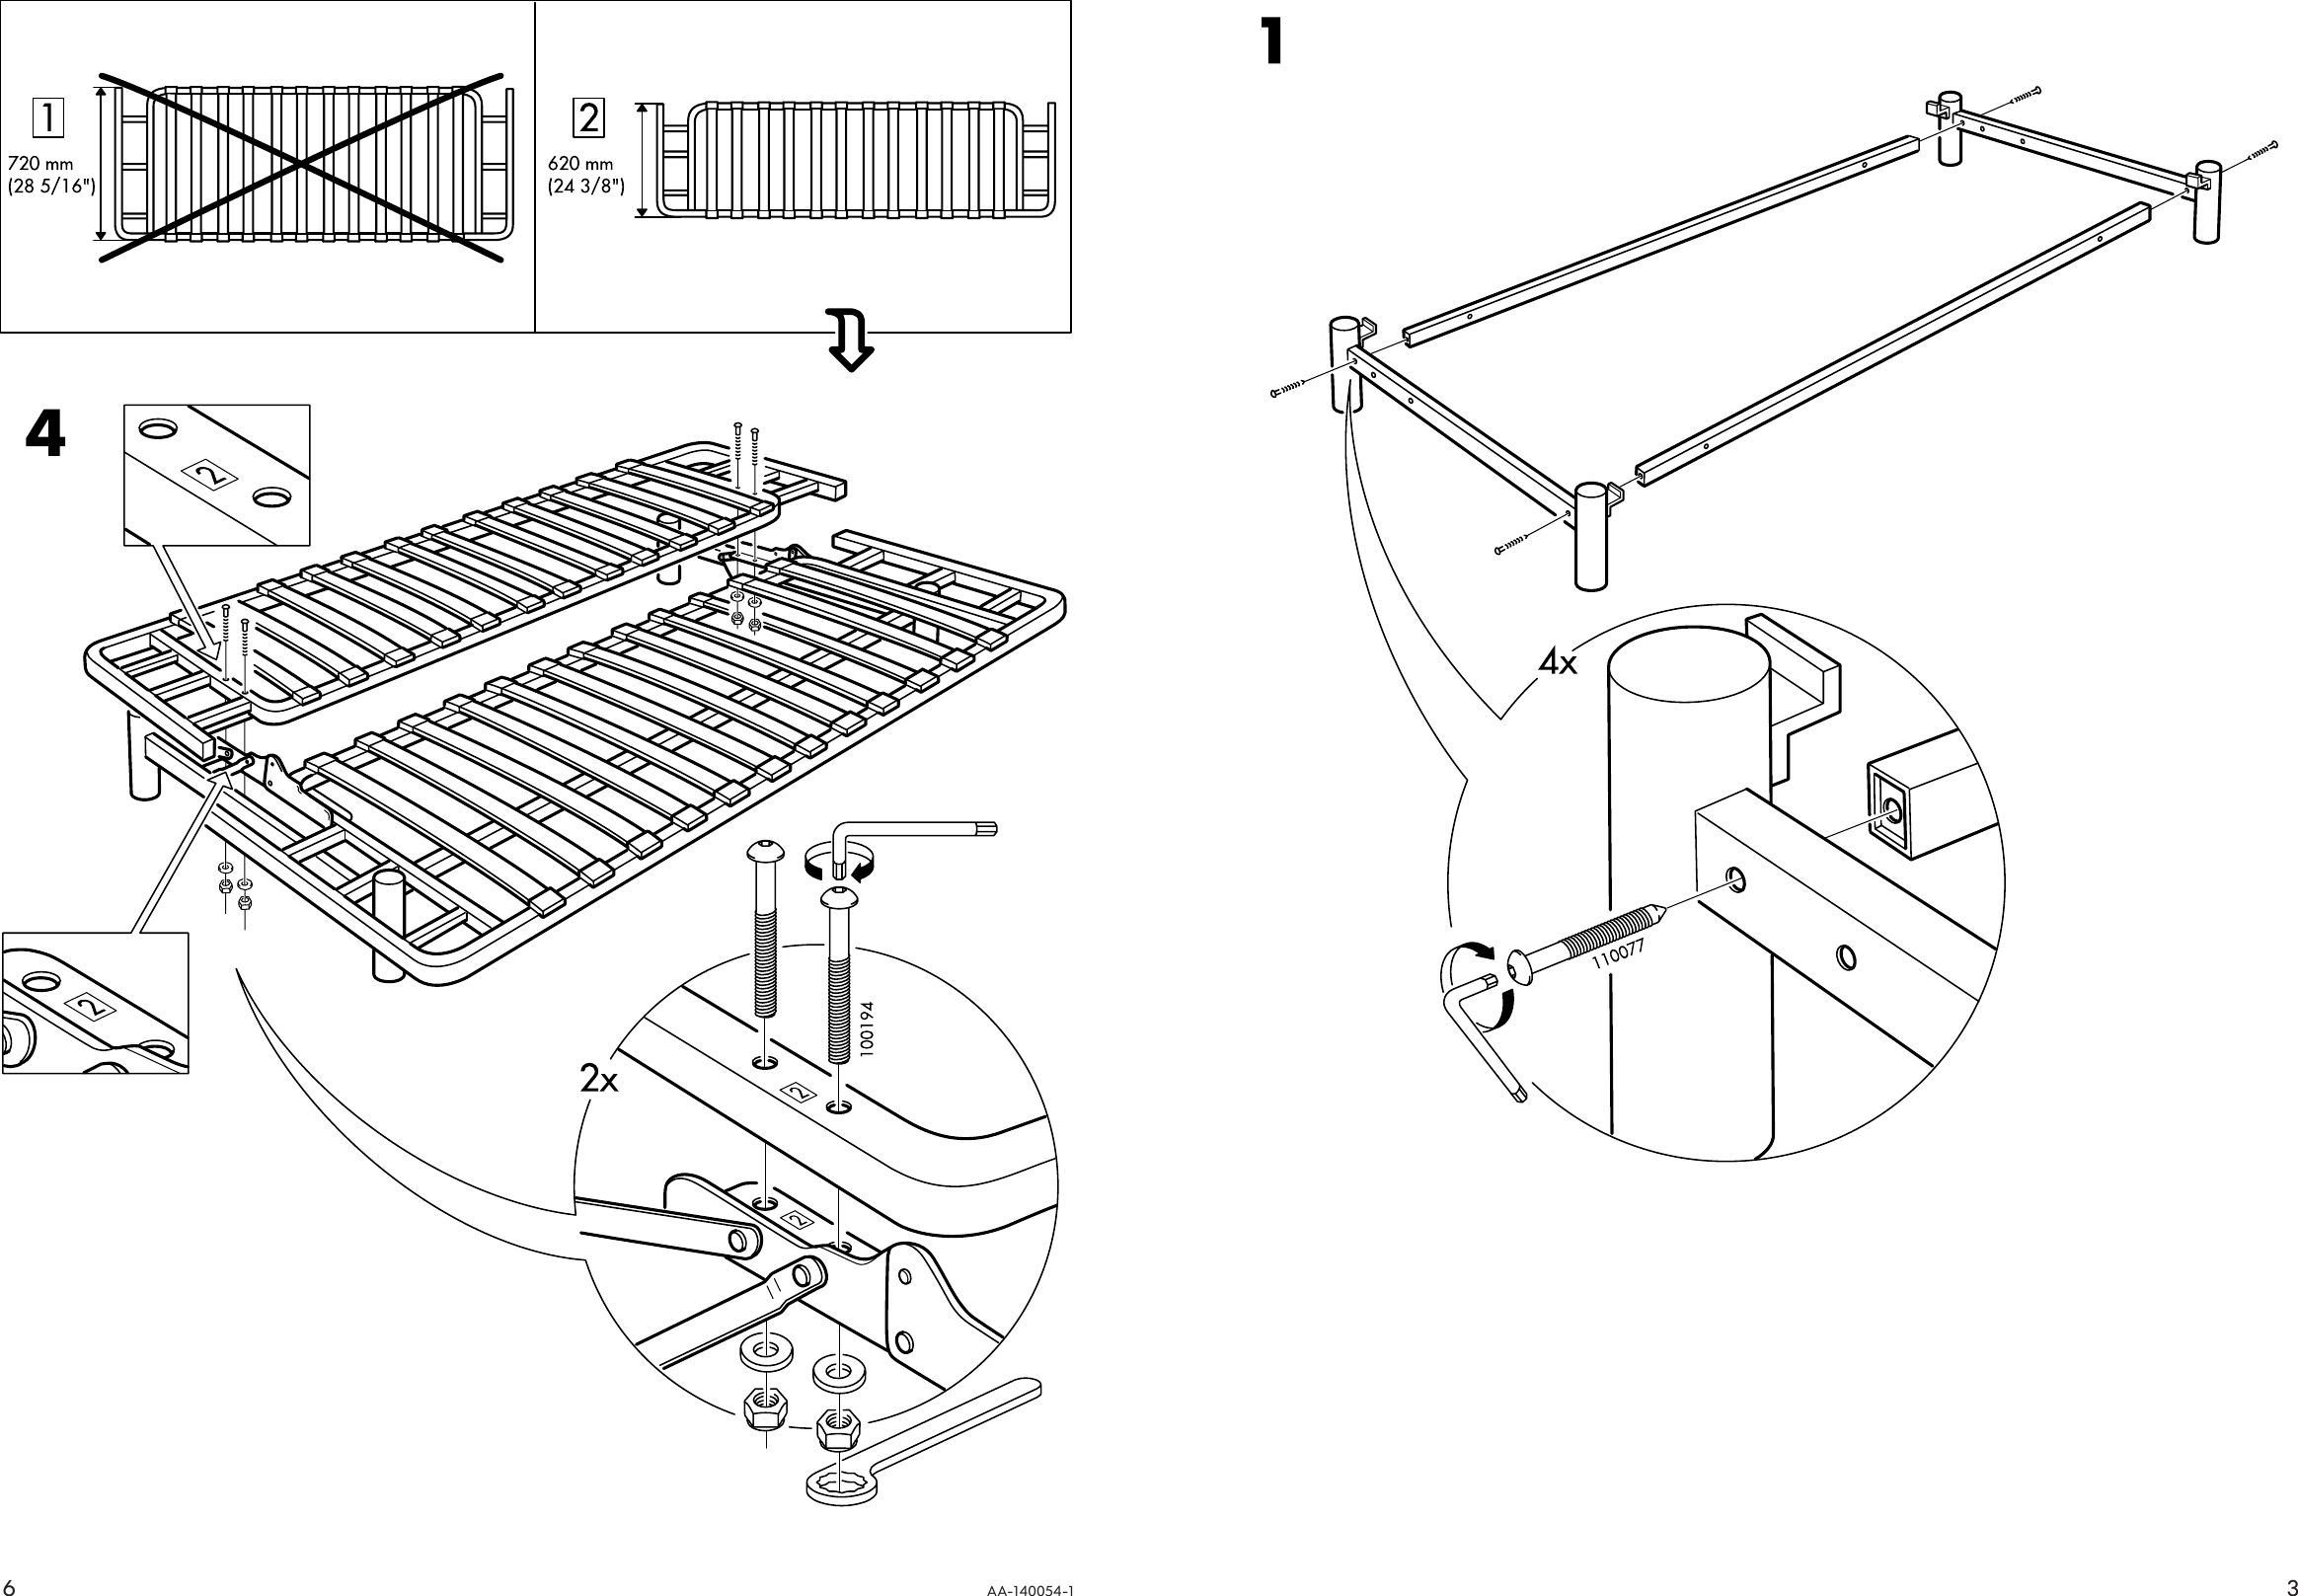 Page 3 of 4 - Ikea Ikea-Beddinge-Sofabed-Frame-Assembly-Instruction-2  Ikea-beddinge-sofabed-frame-assembly-instruction